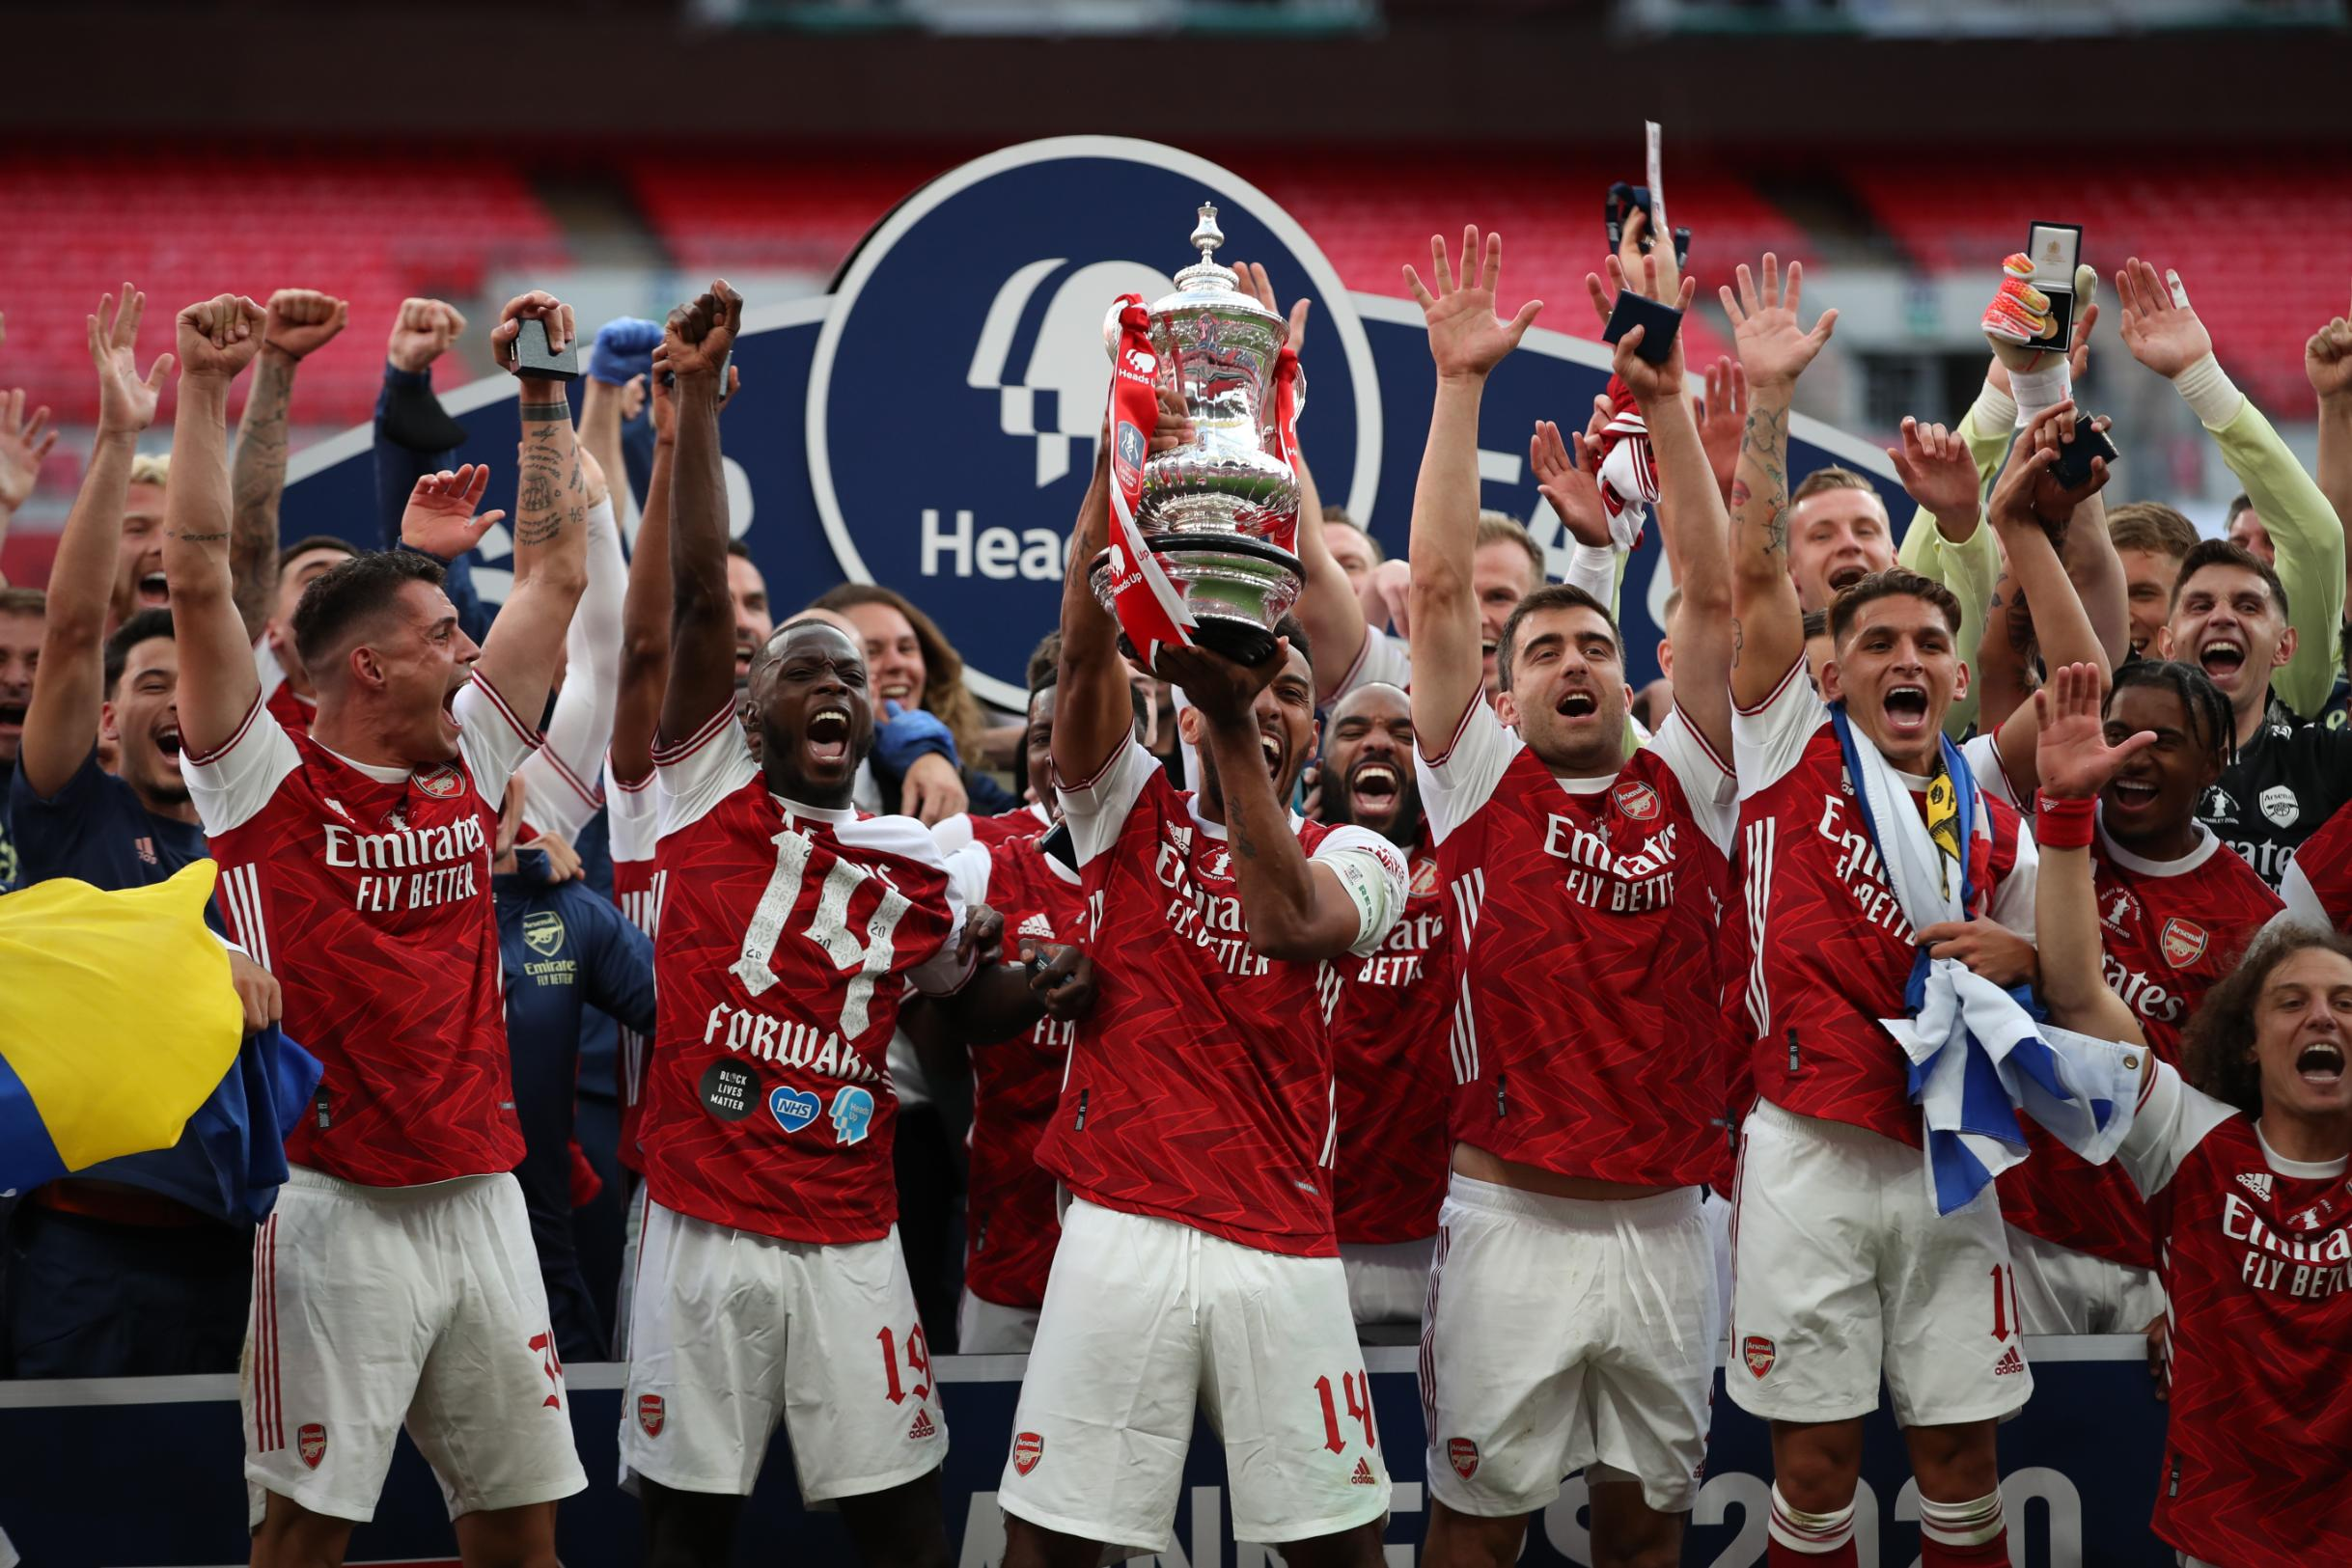 Pierre-Emerick Aubameyang brace helps Arsenal lift the FA Cup against Chelsea